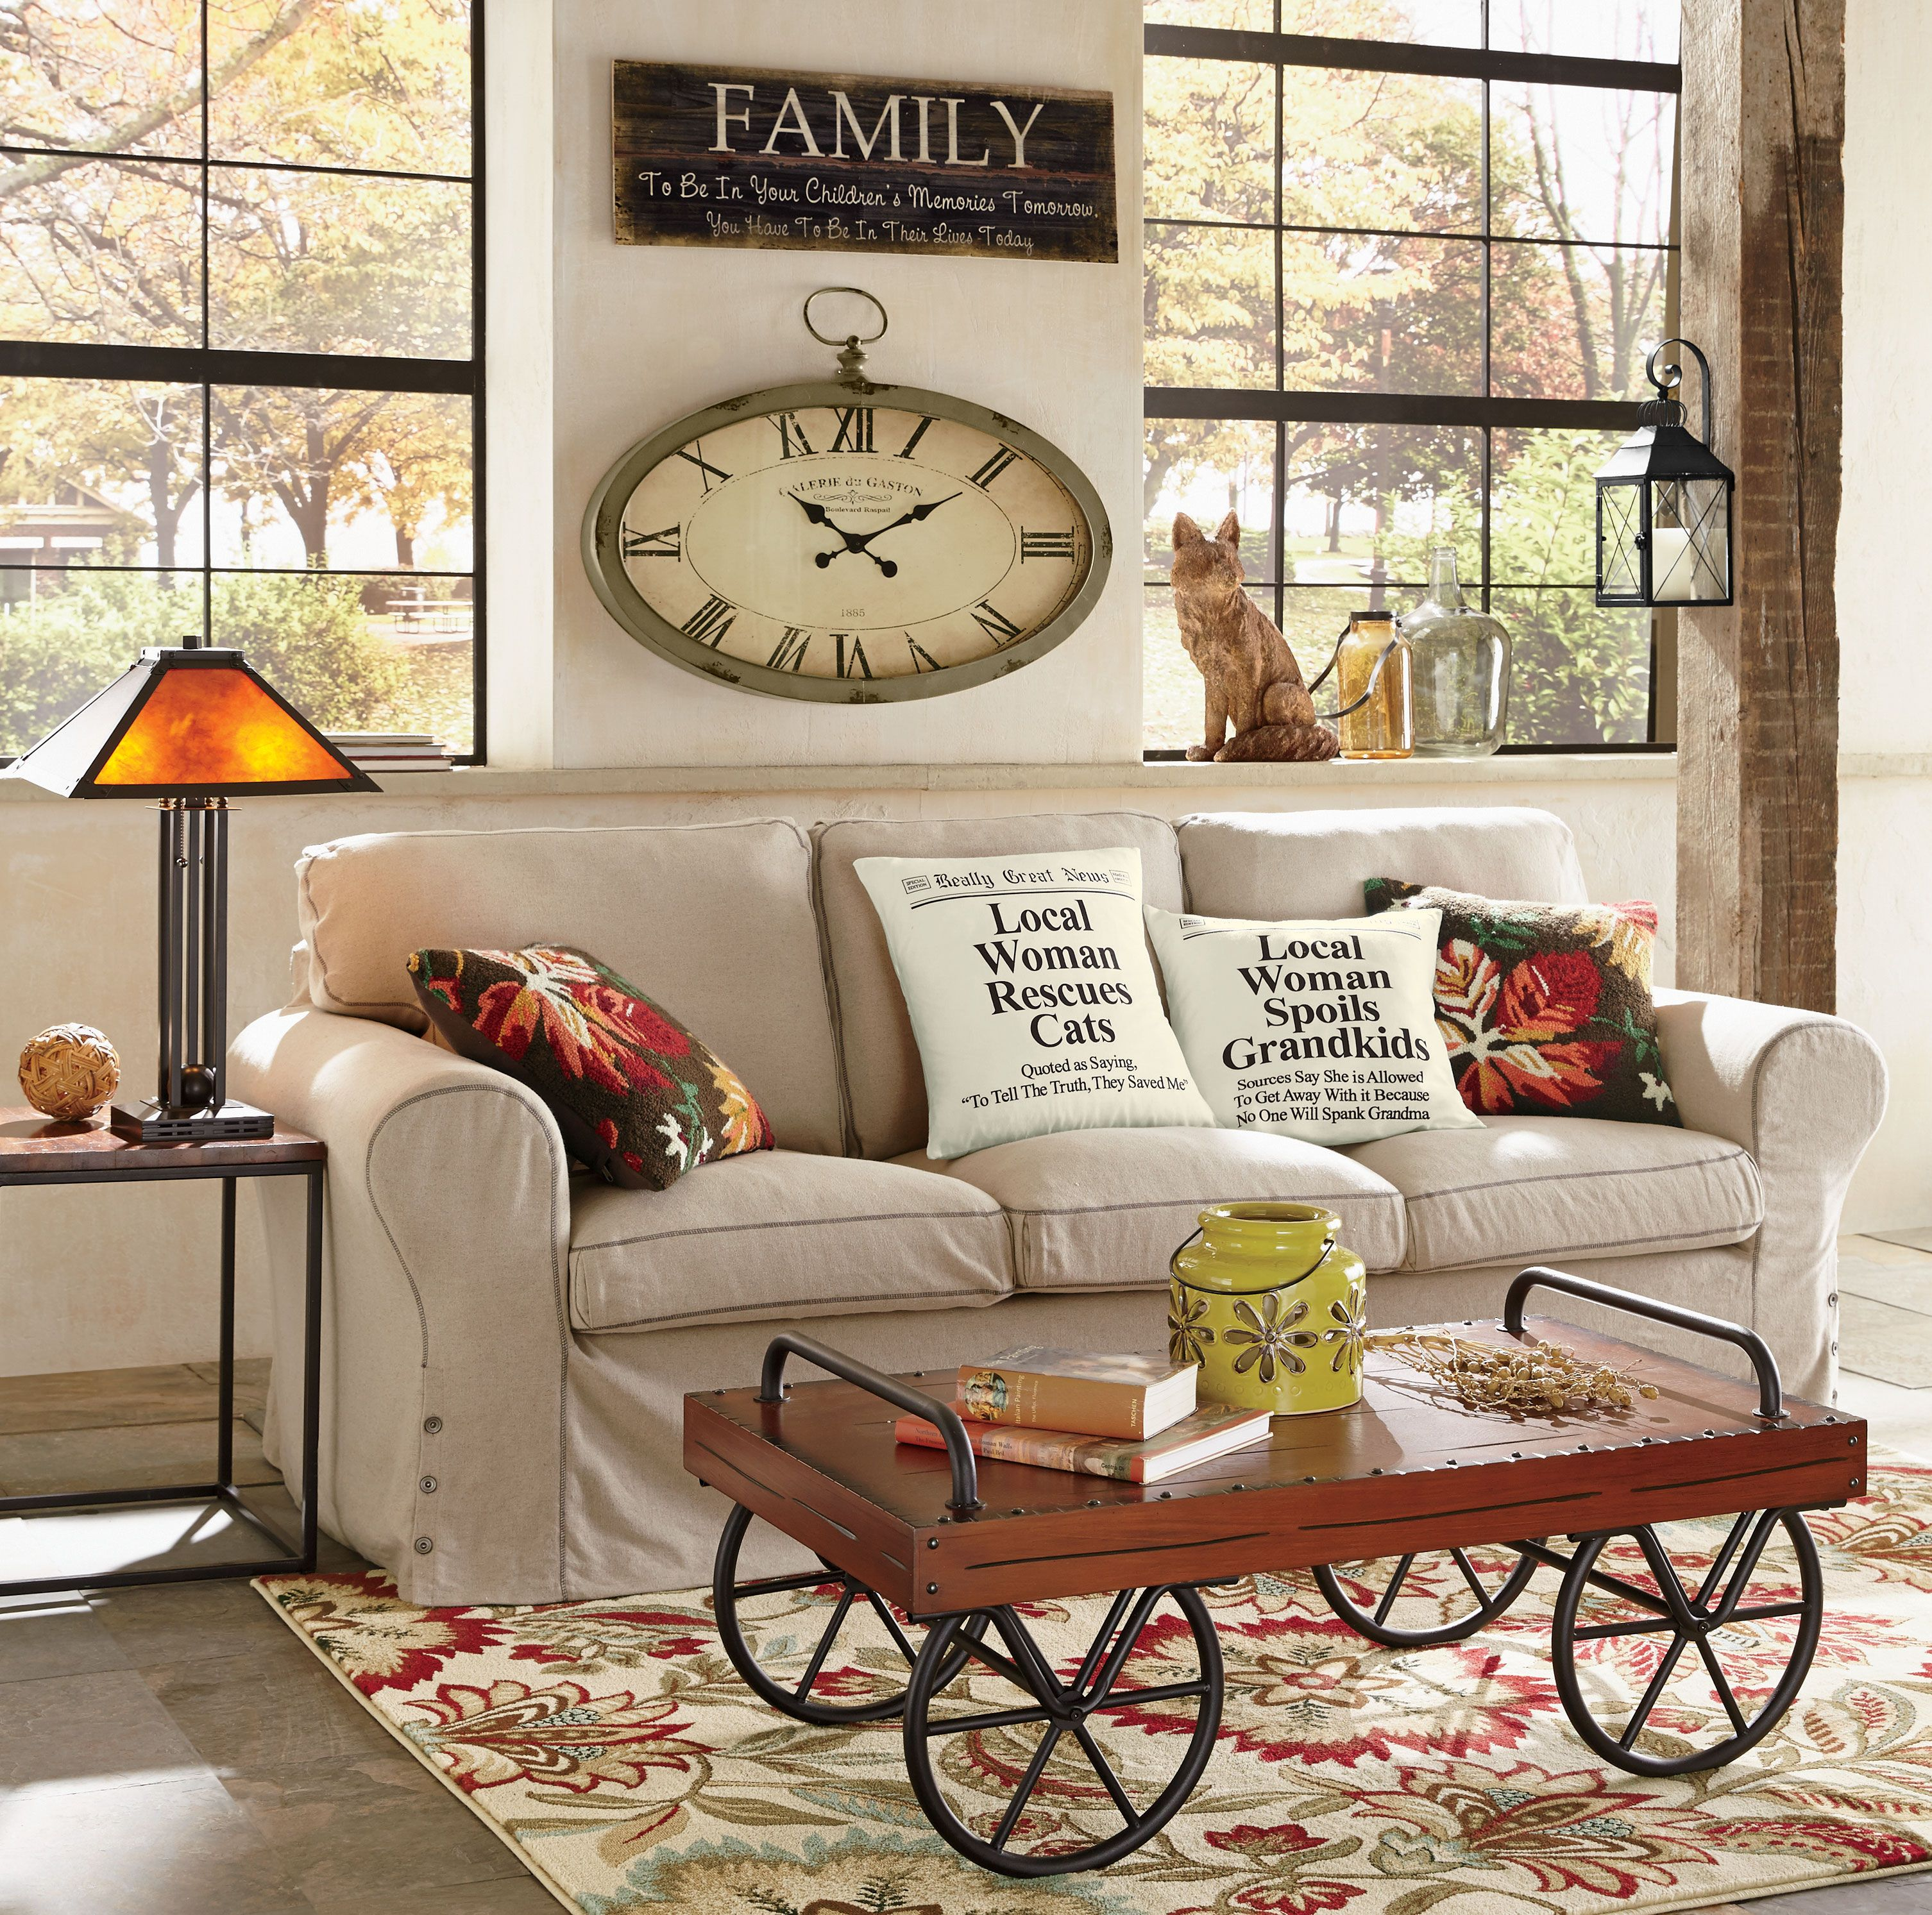 A Warm Rug Some Fall Primping Home Decor: Living Room Decorating Ideas For Fall